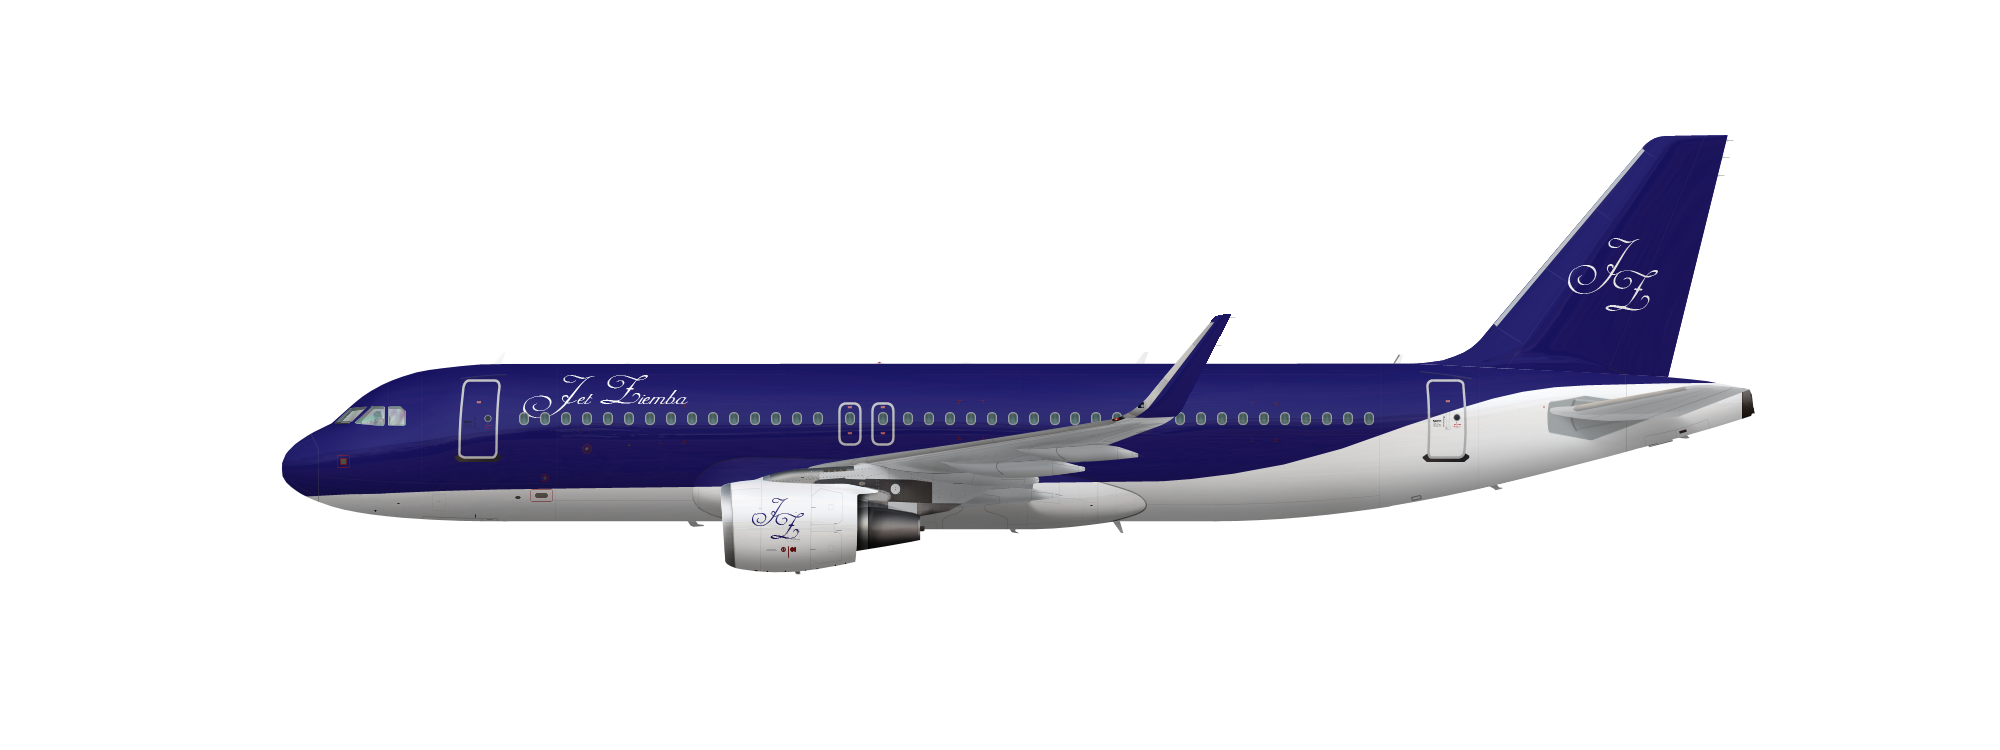 Airbus_A320_Jet_Ziemba.png